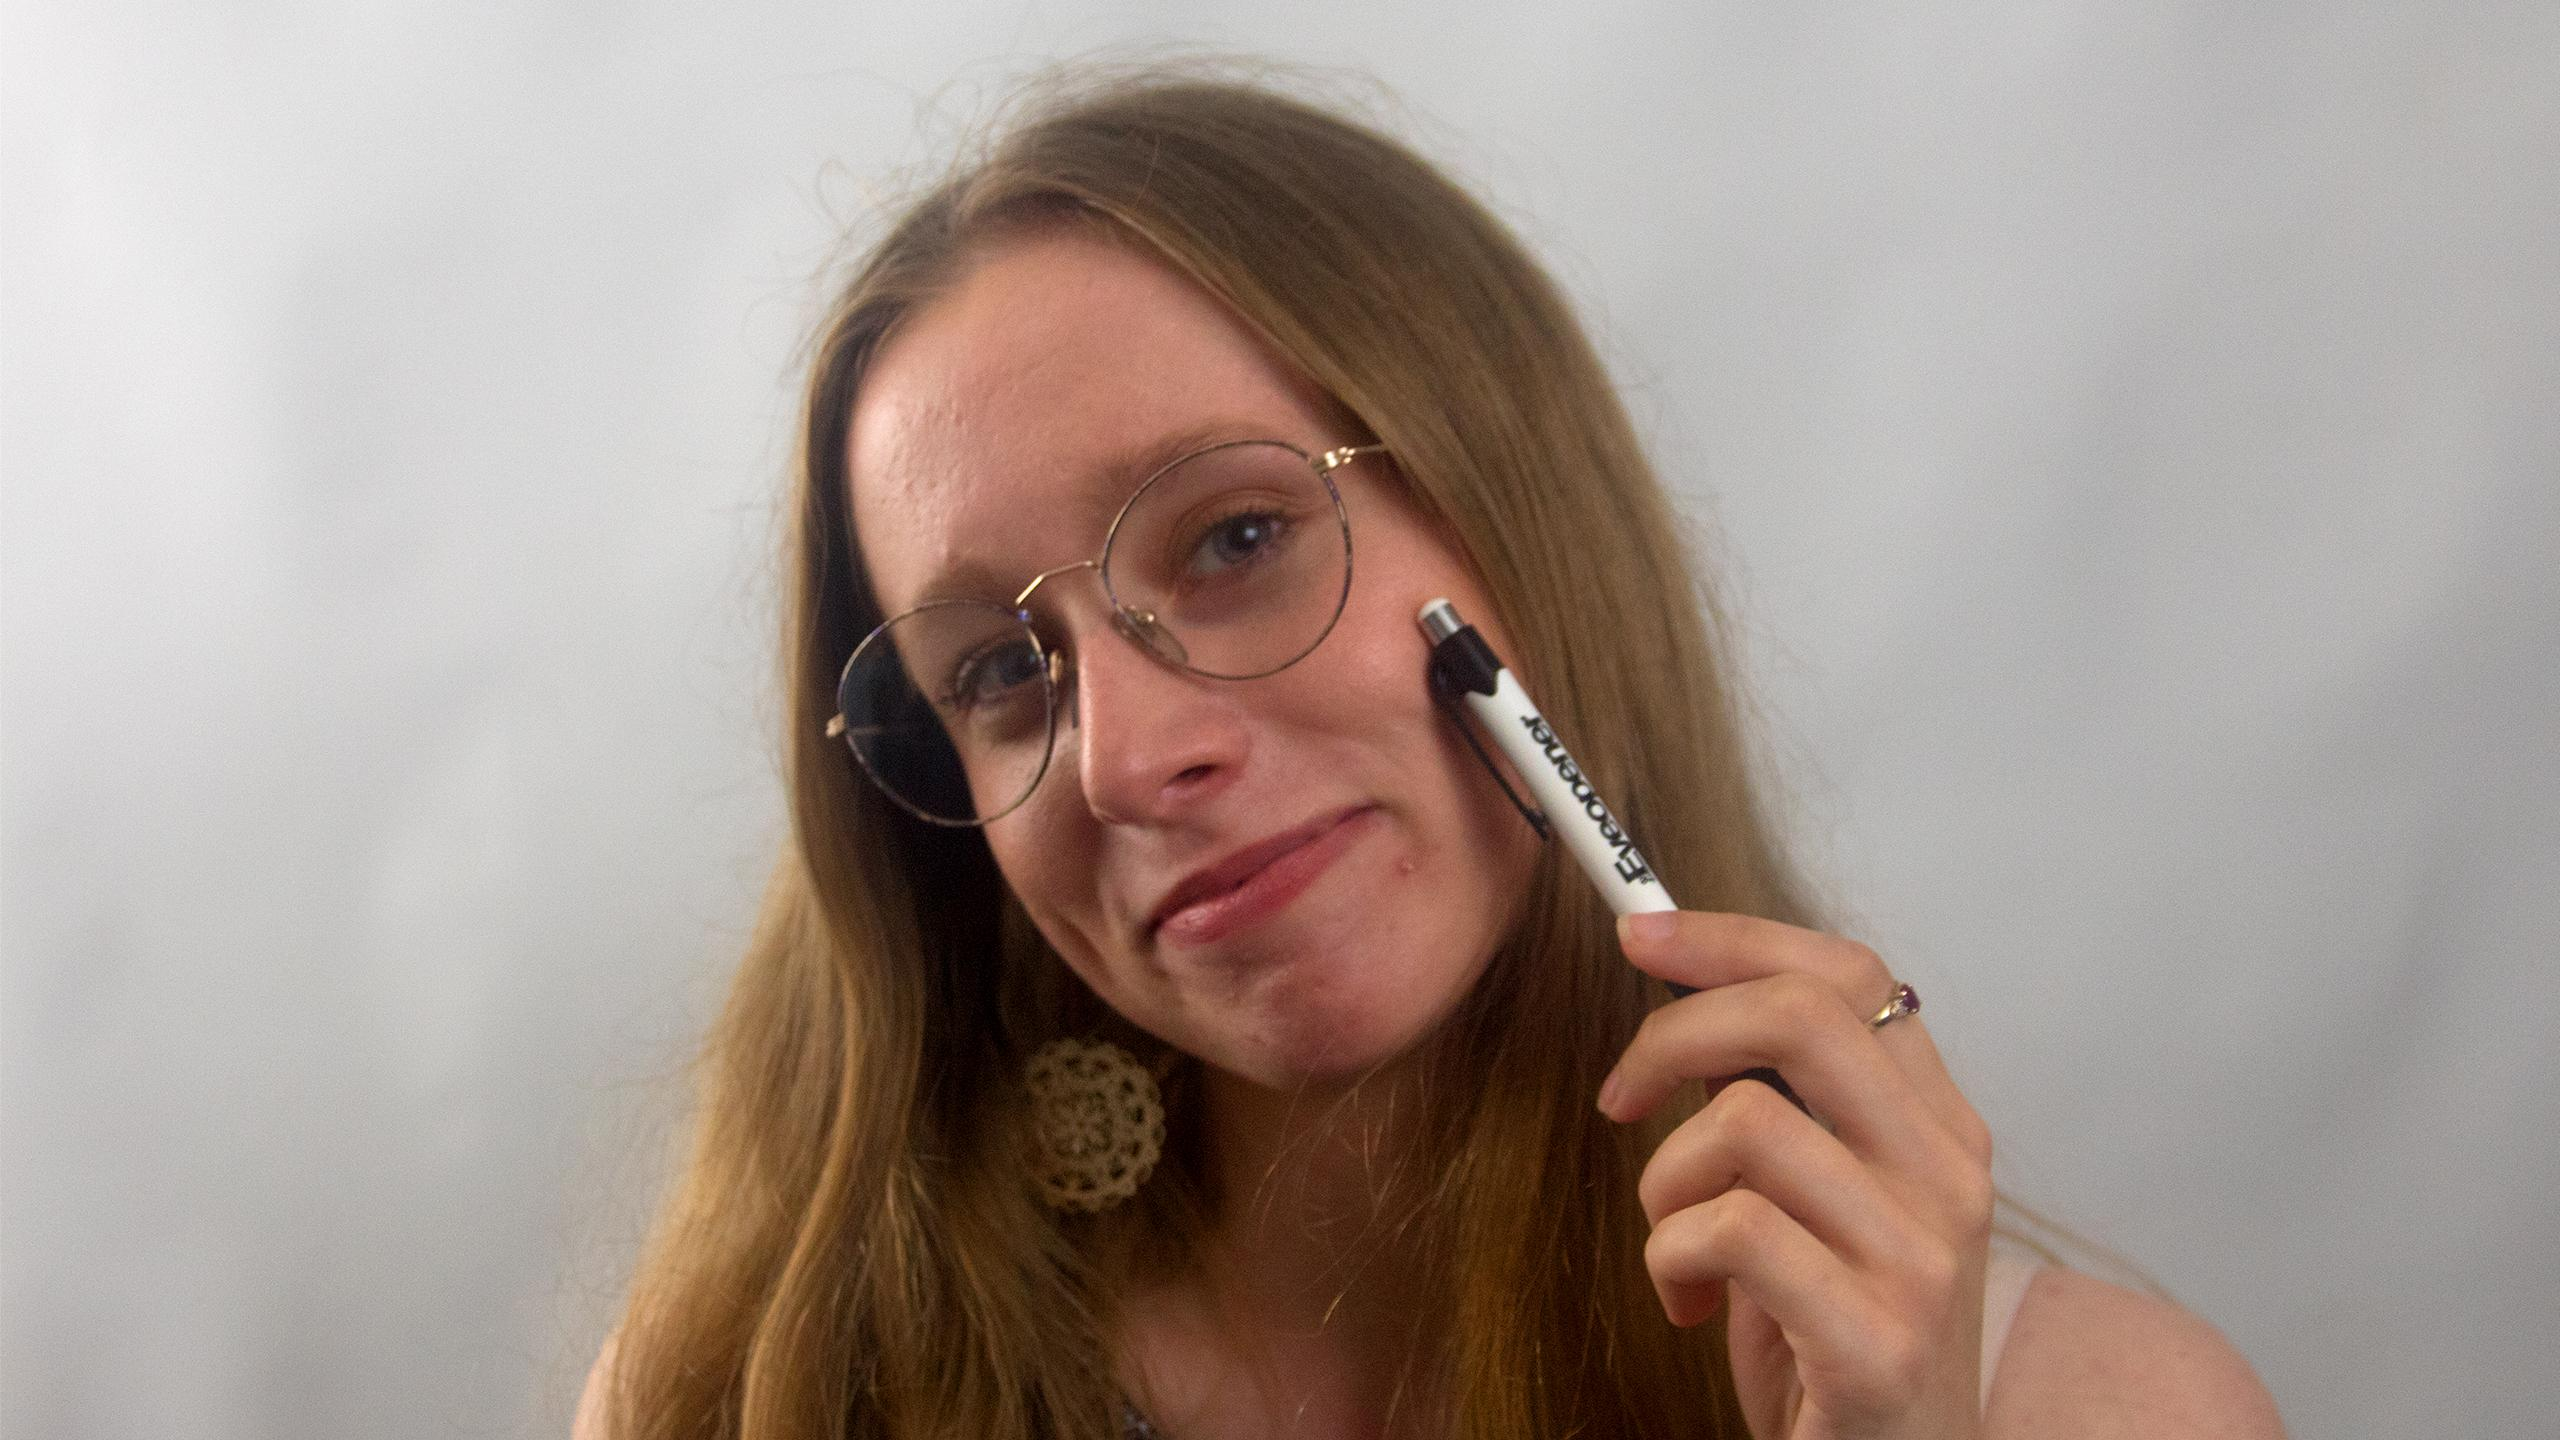 Smiling girl with glasses holding a pen to her cheek